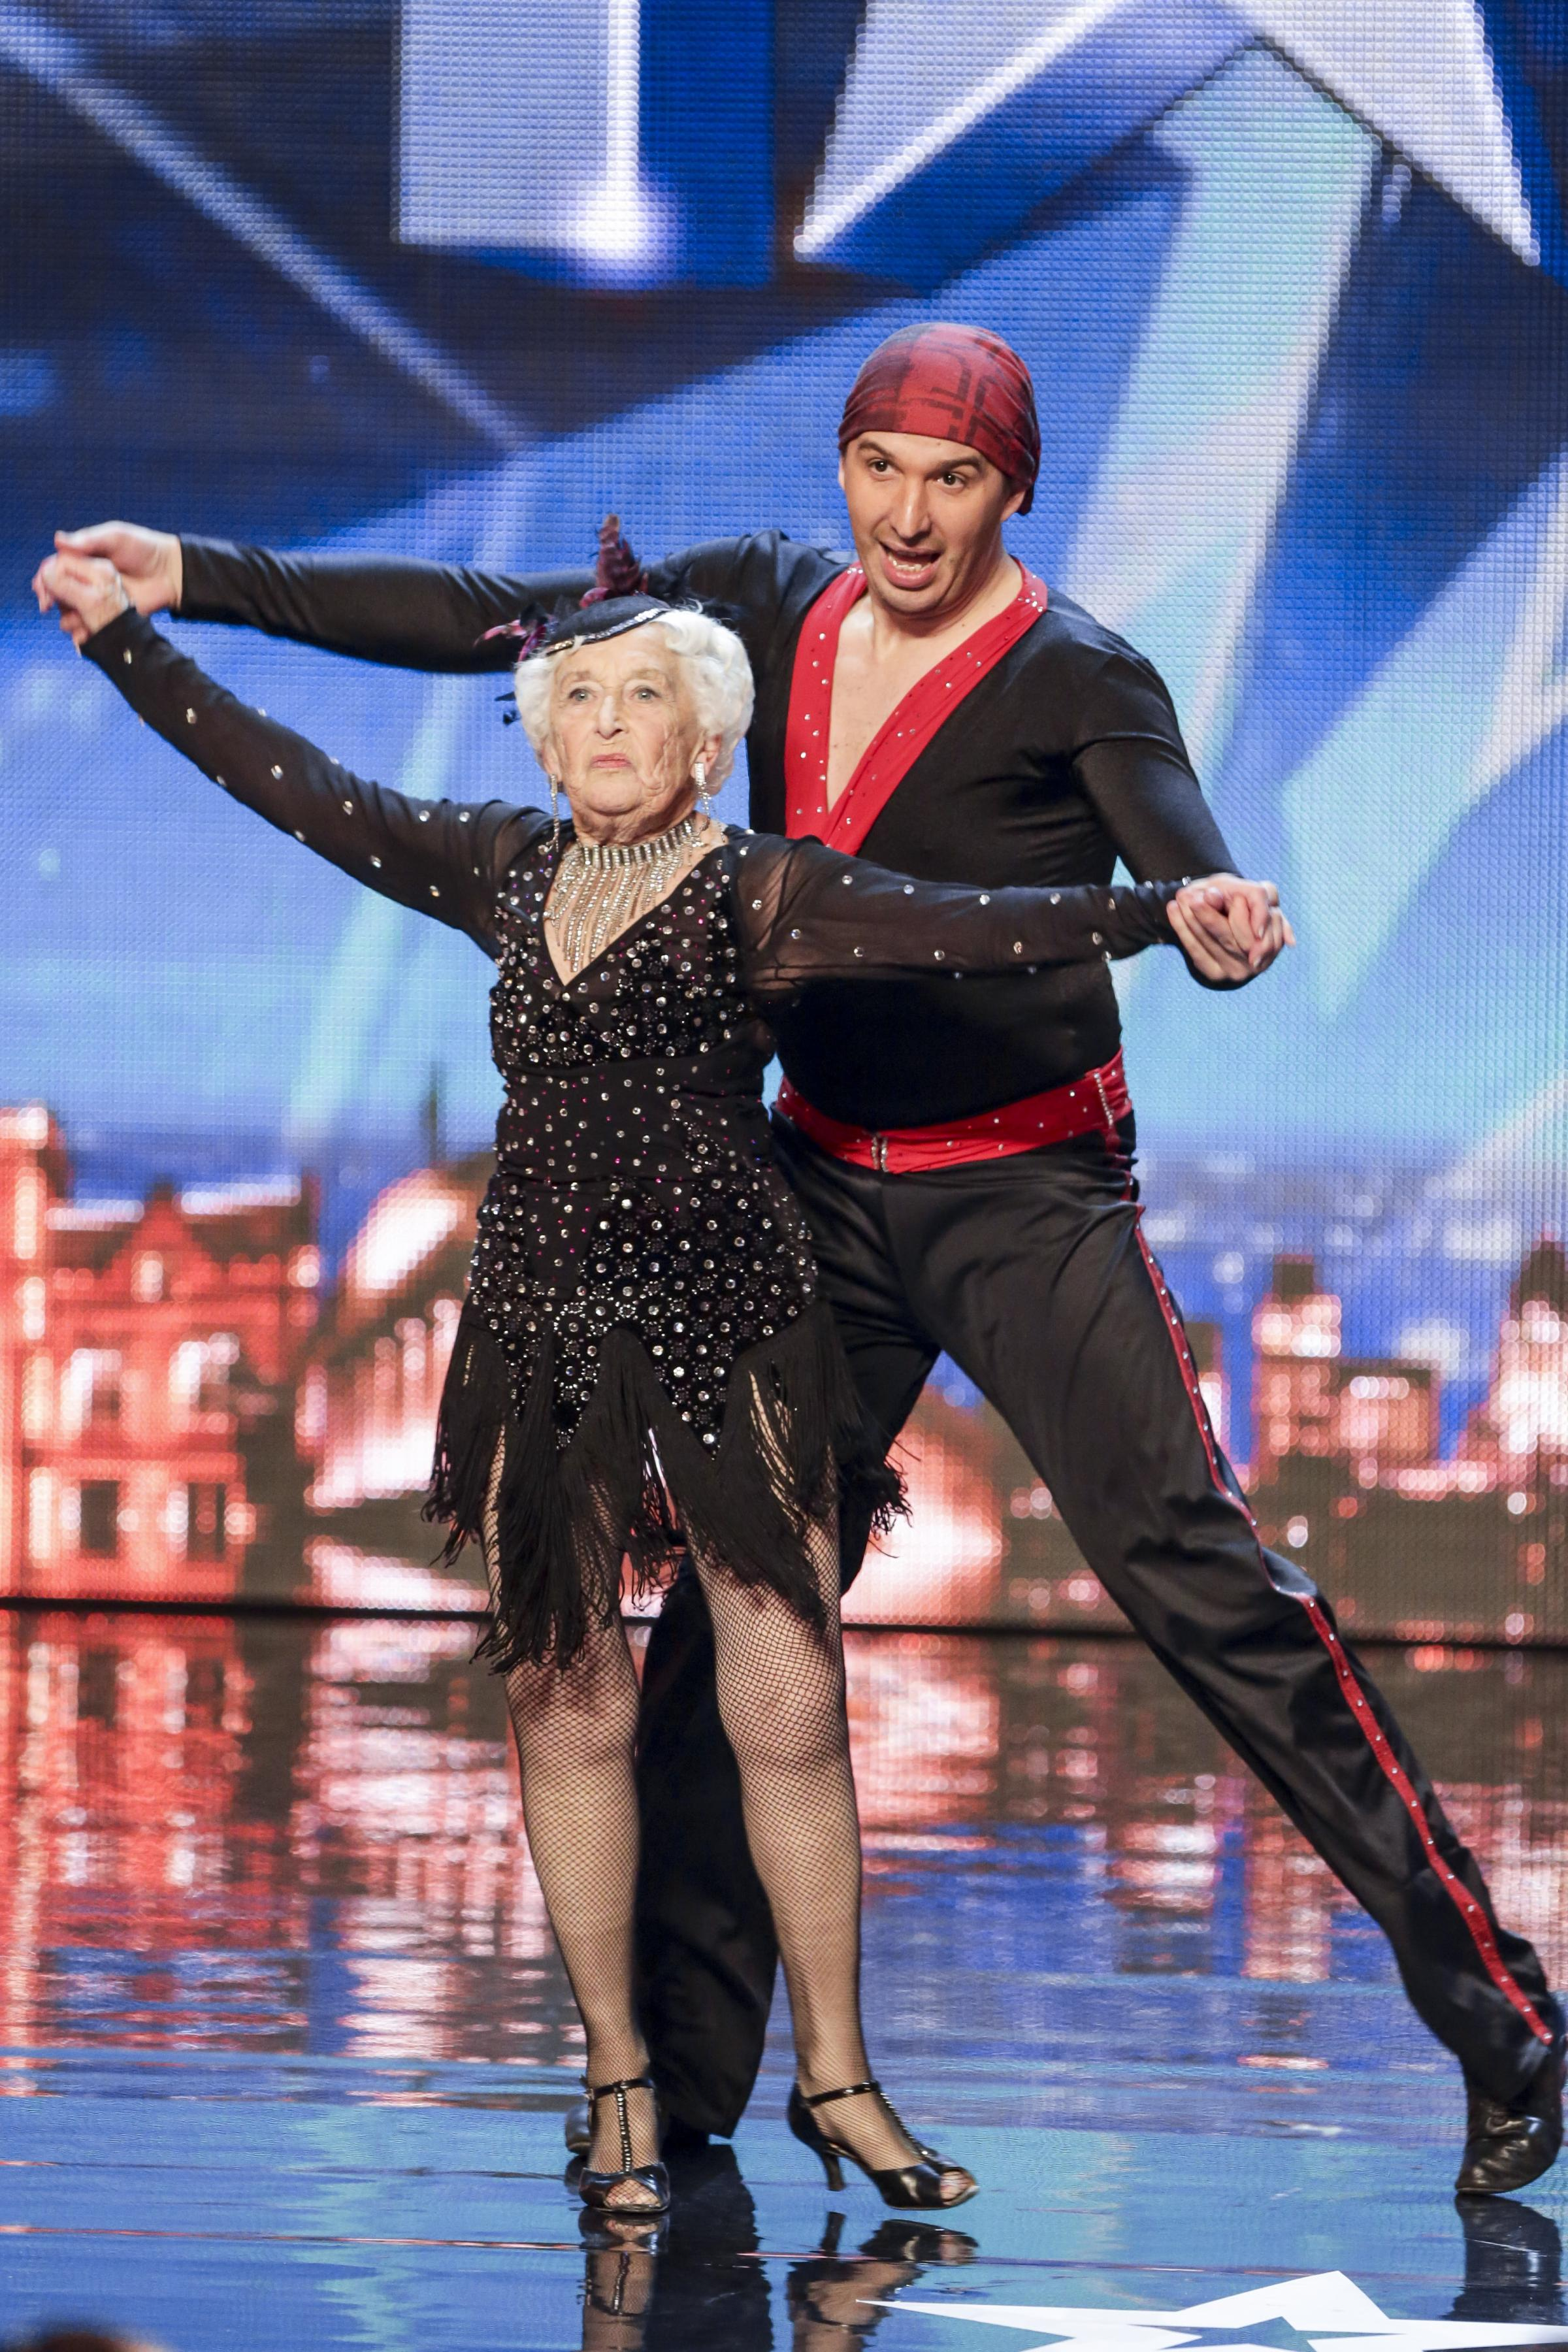 Stourbridge salsa gran Paddy Jones WILL dance in Britain's Got Talent semi-final